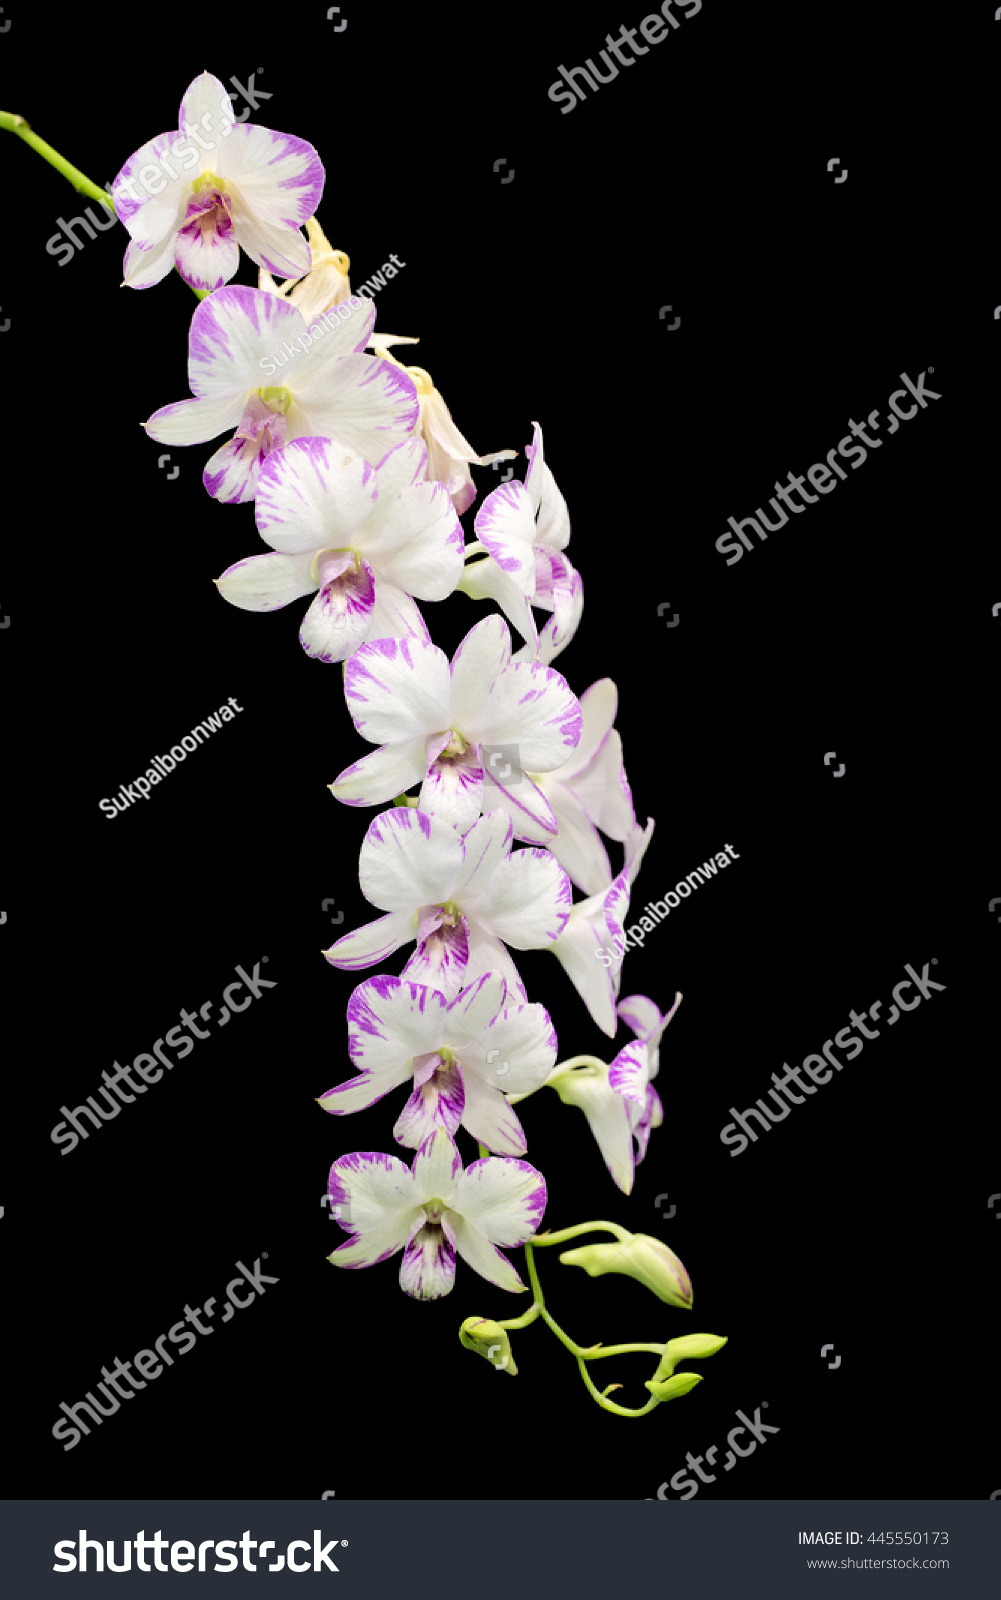 San Phalaenopsis Type Dendrobium Hybrid Purple And White Flowers Orchids In The Park 2016